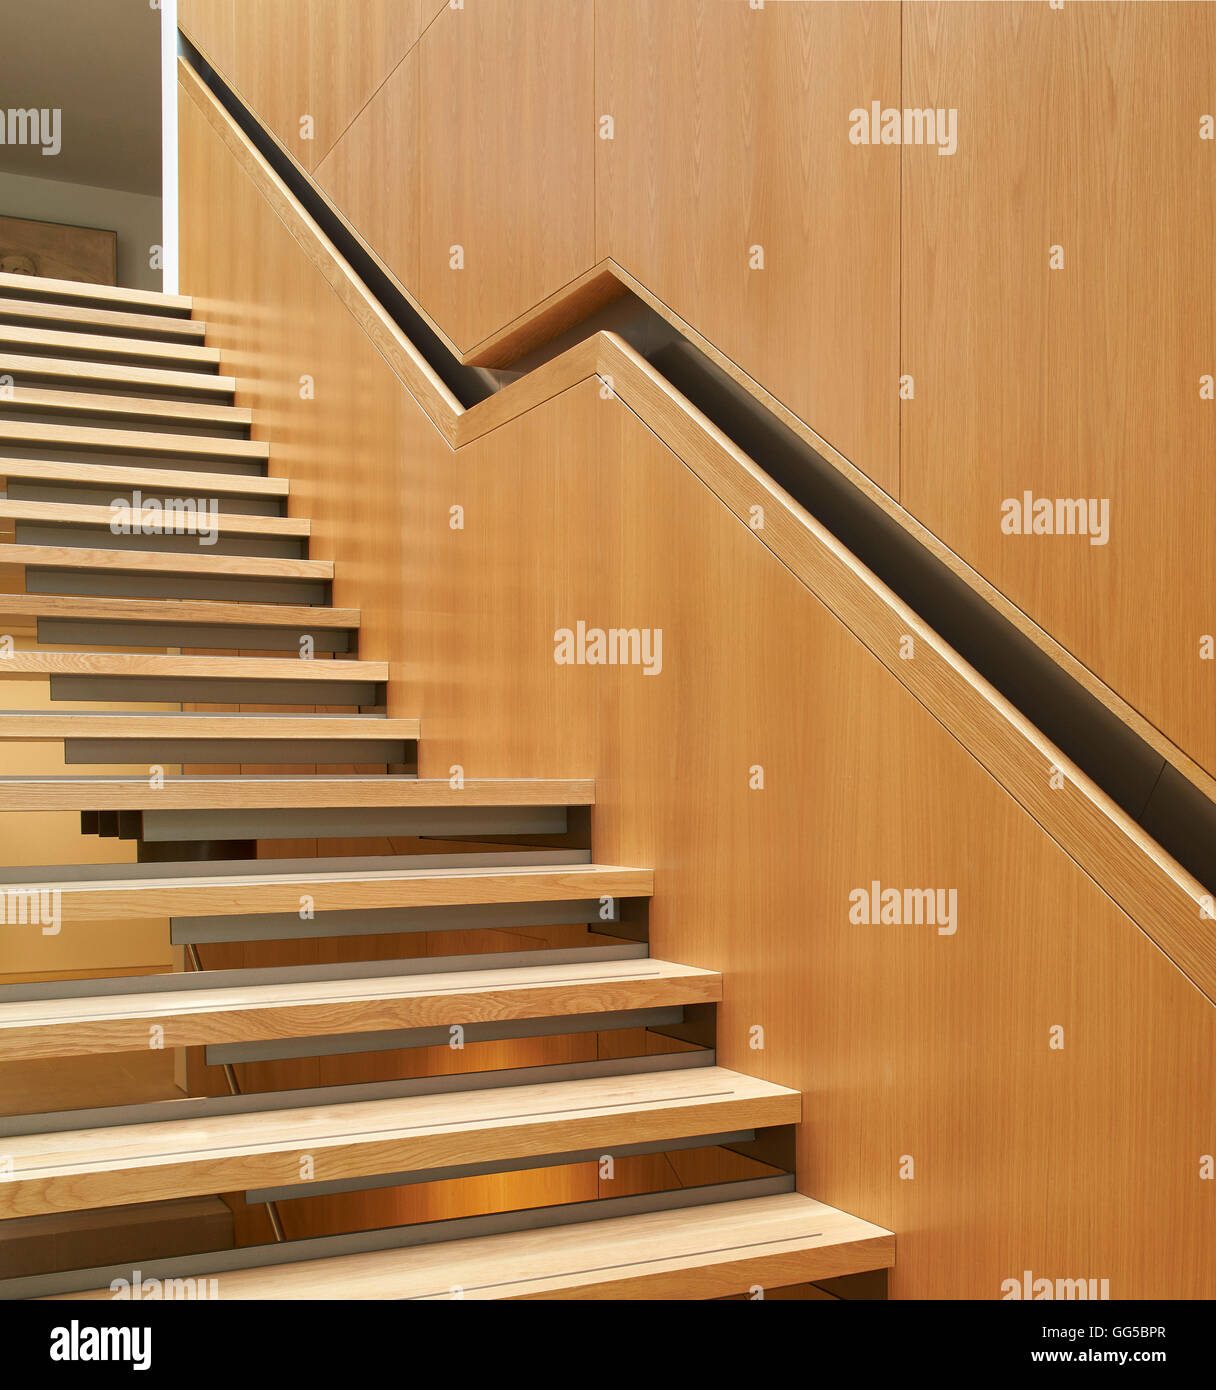 Timber stairway with recessed handrail. The Garden Building  at Lincoln College, Oxford, United Kingdom. Architect: - Stock Image